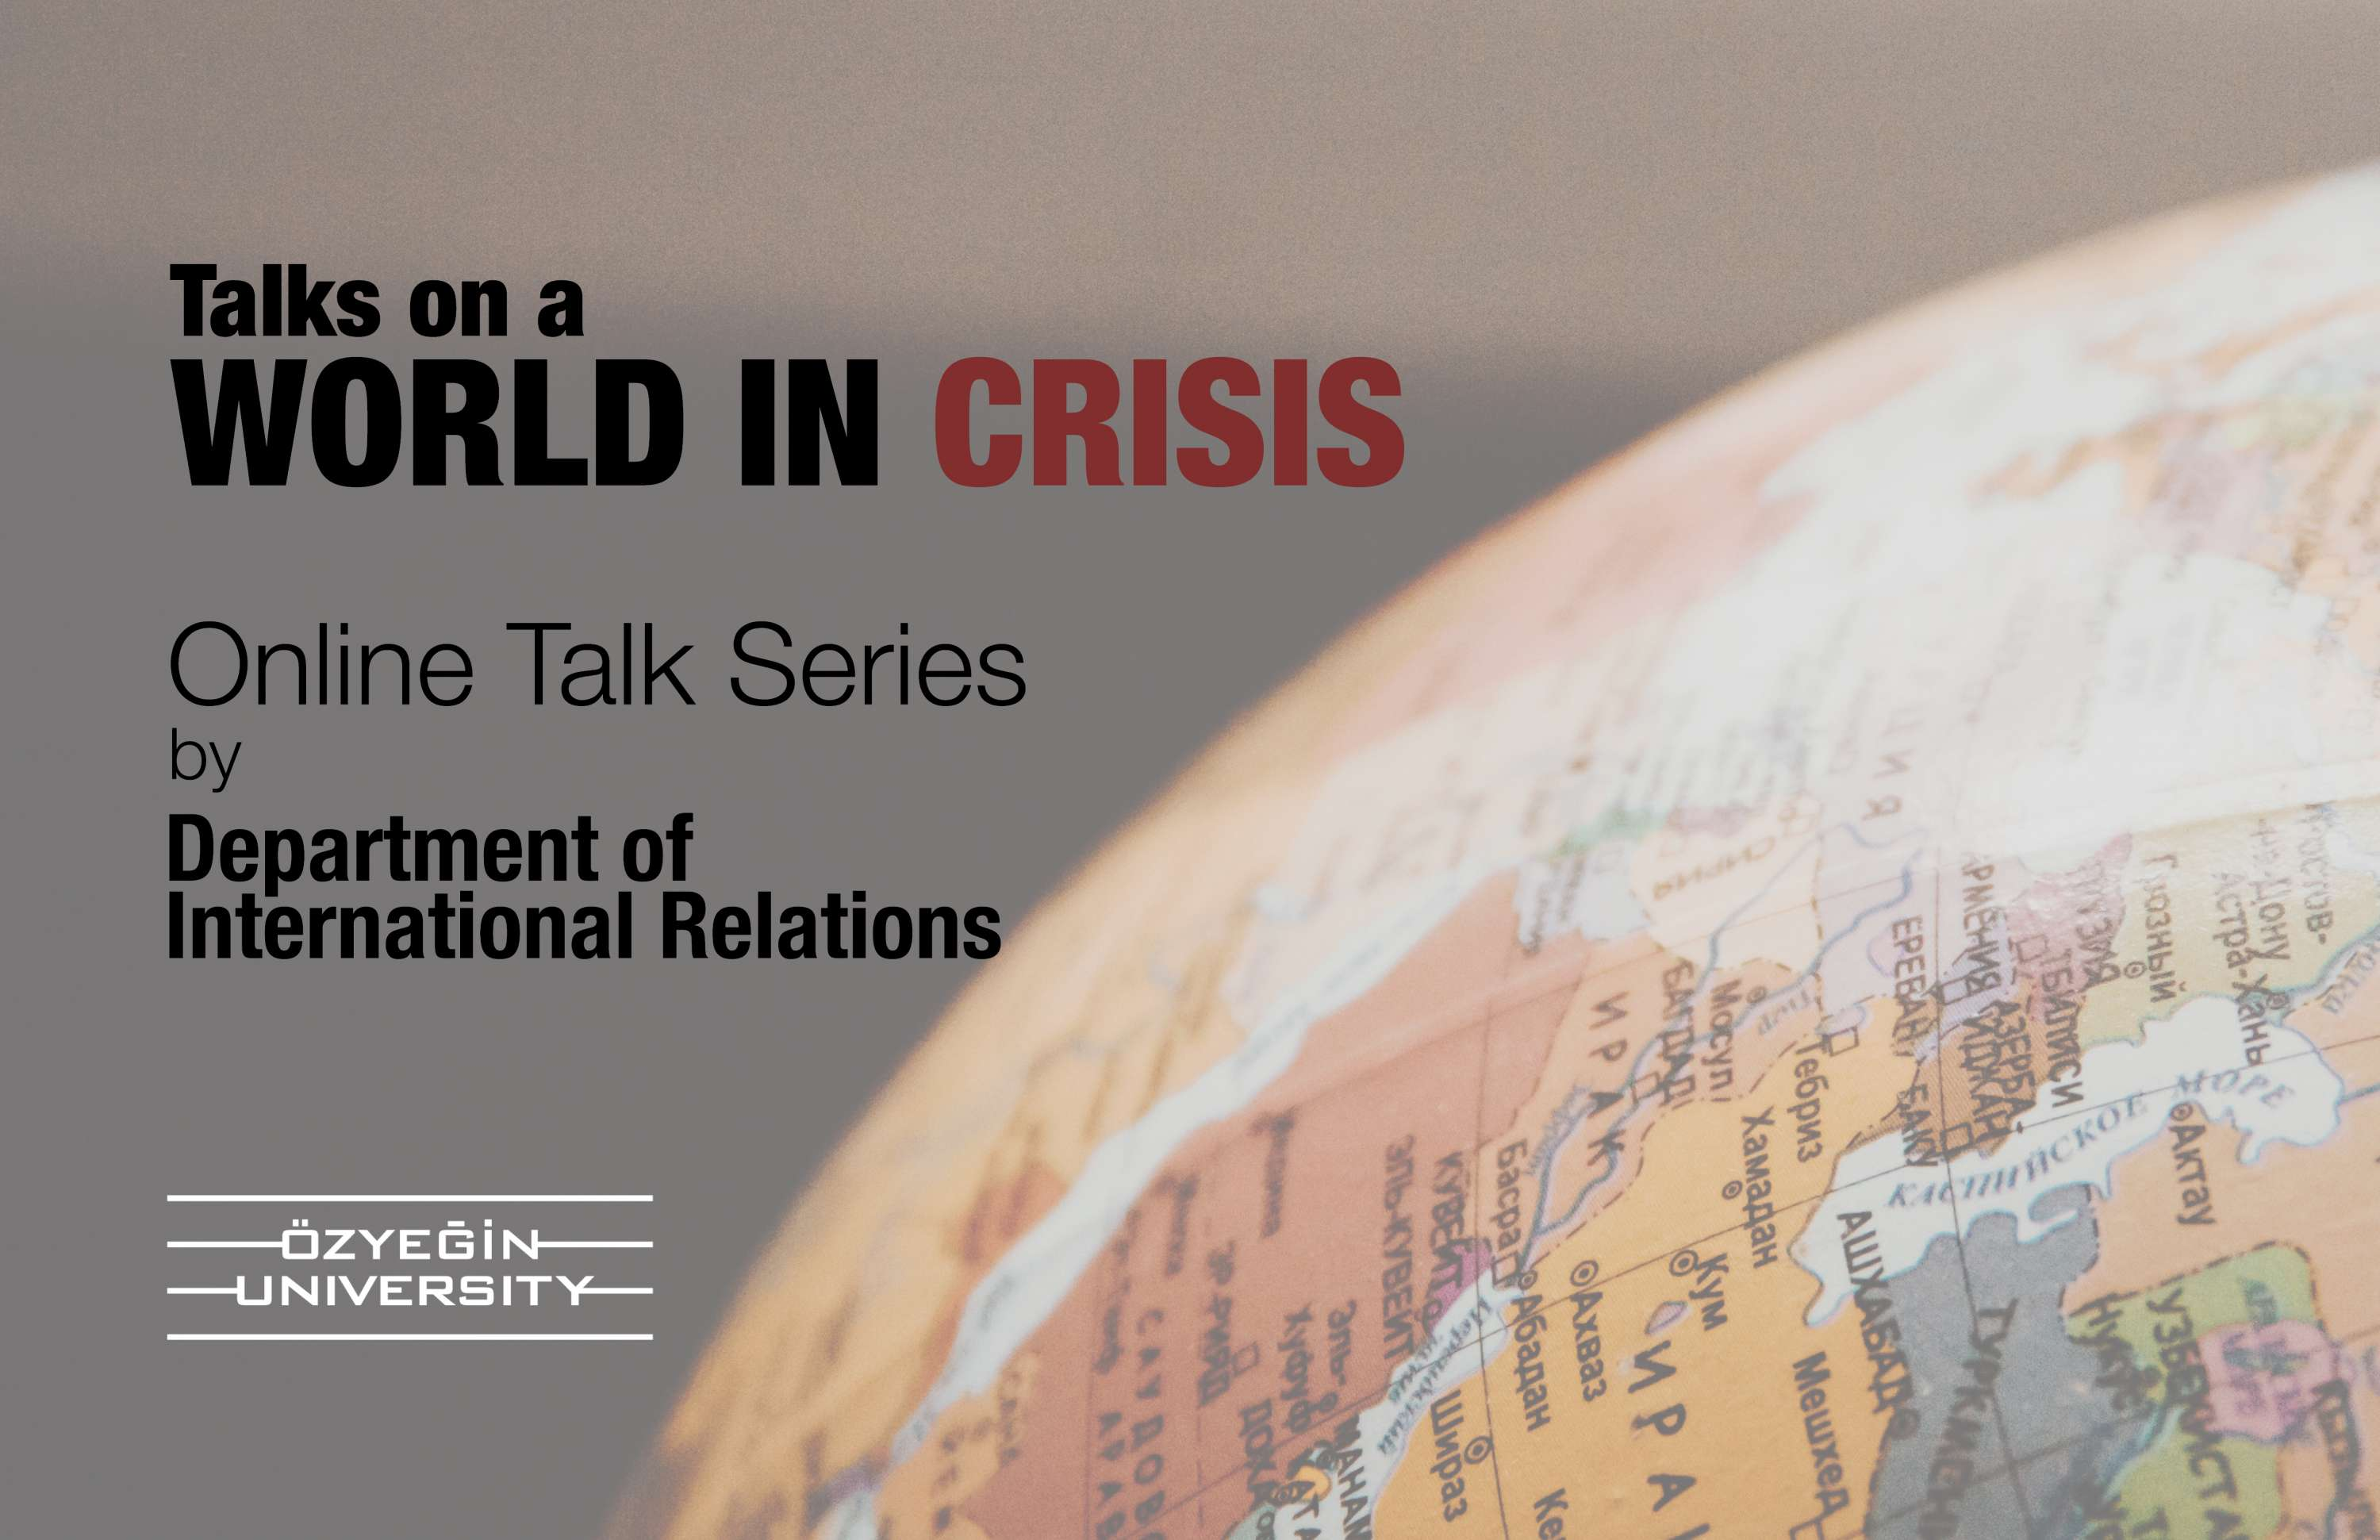 Talks on a World in Crisis Flyer